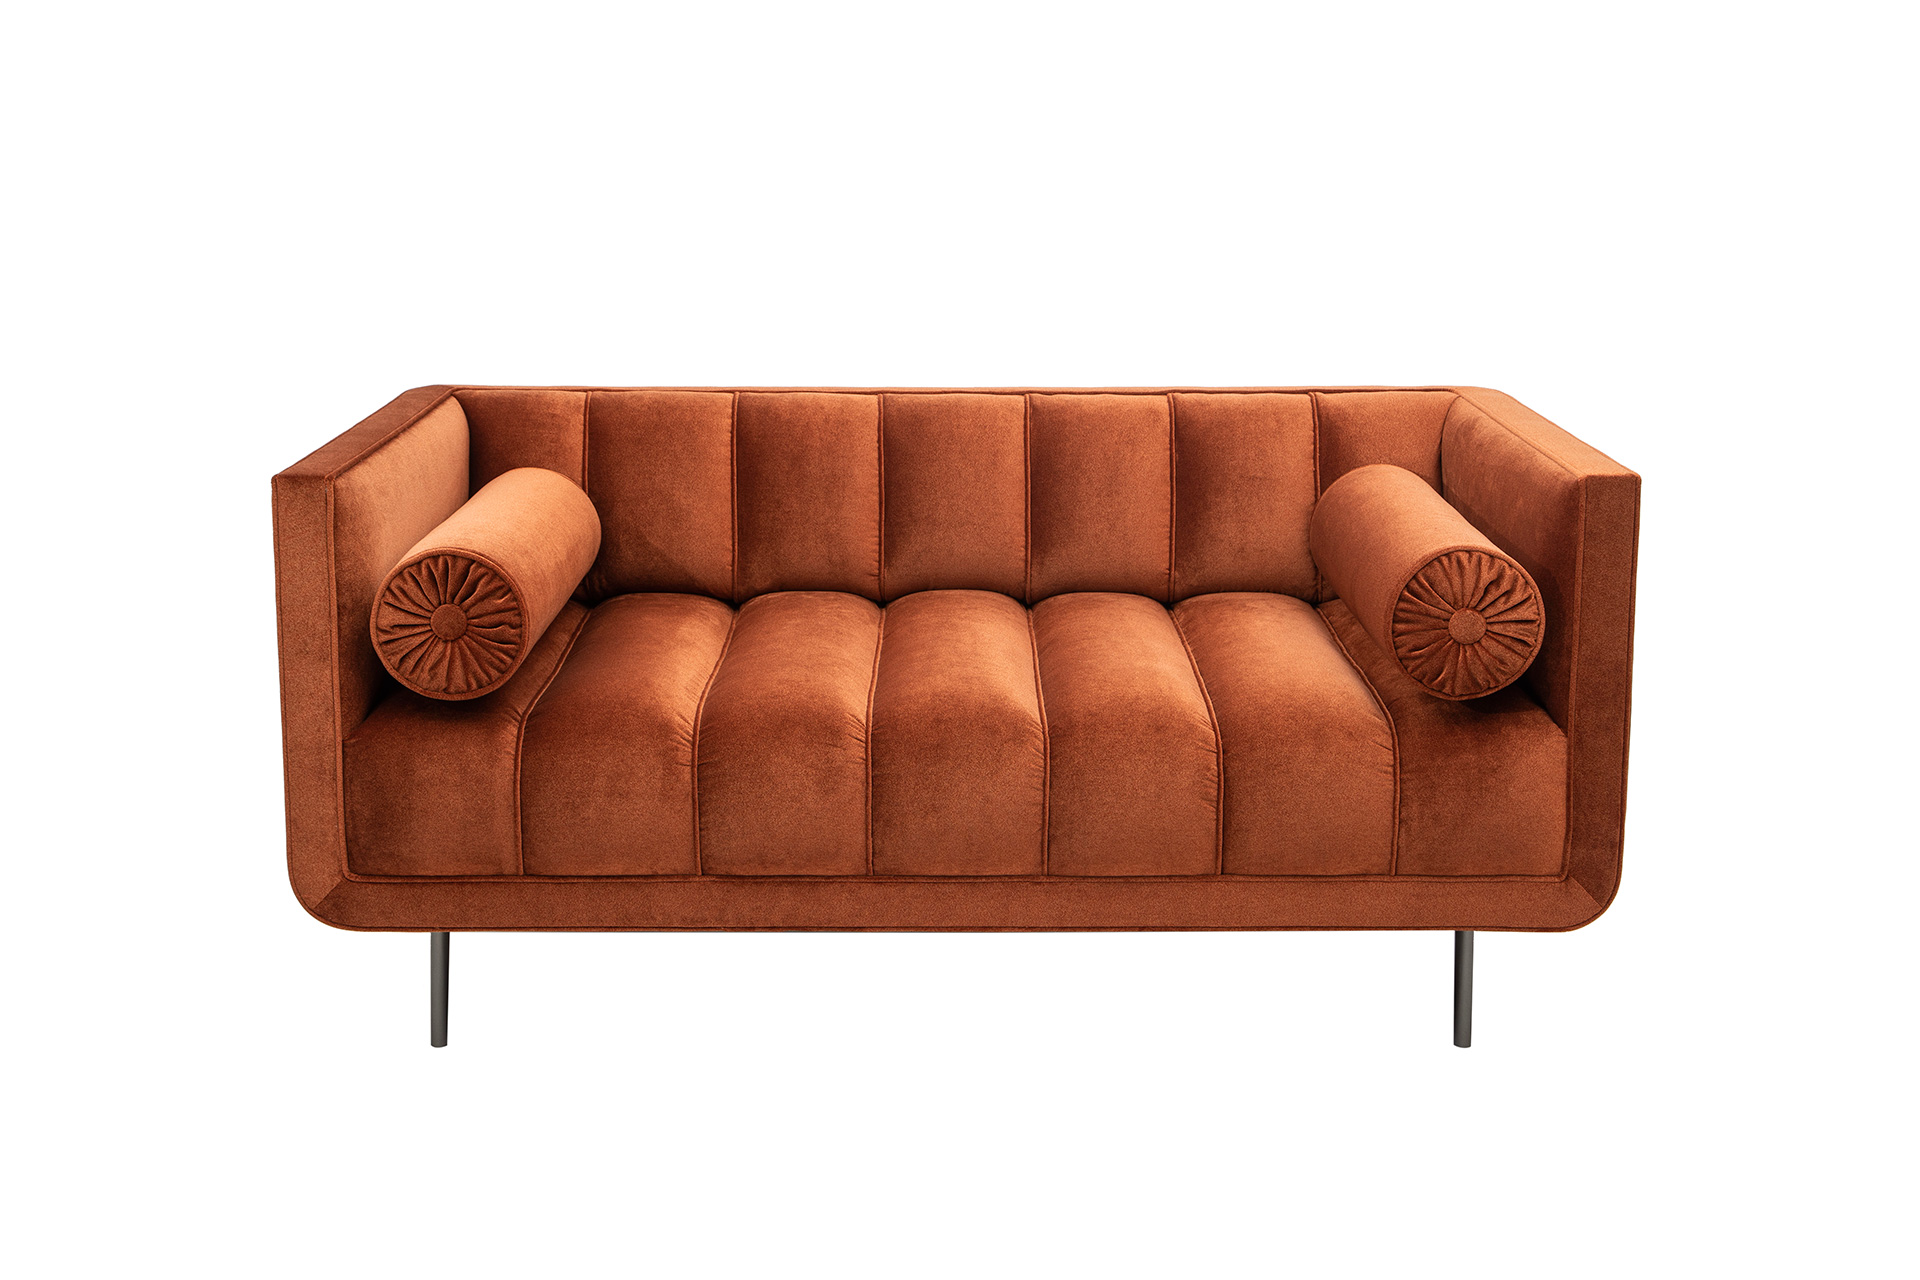 "- RITA"" Two Seater Sofa - Furniture Collection, Seating KalaRara"